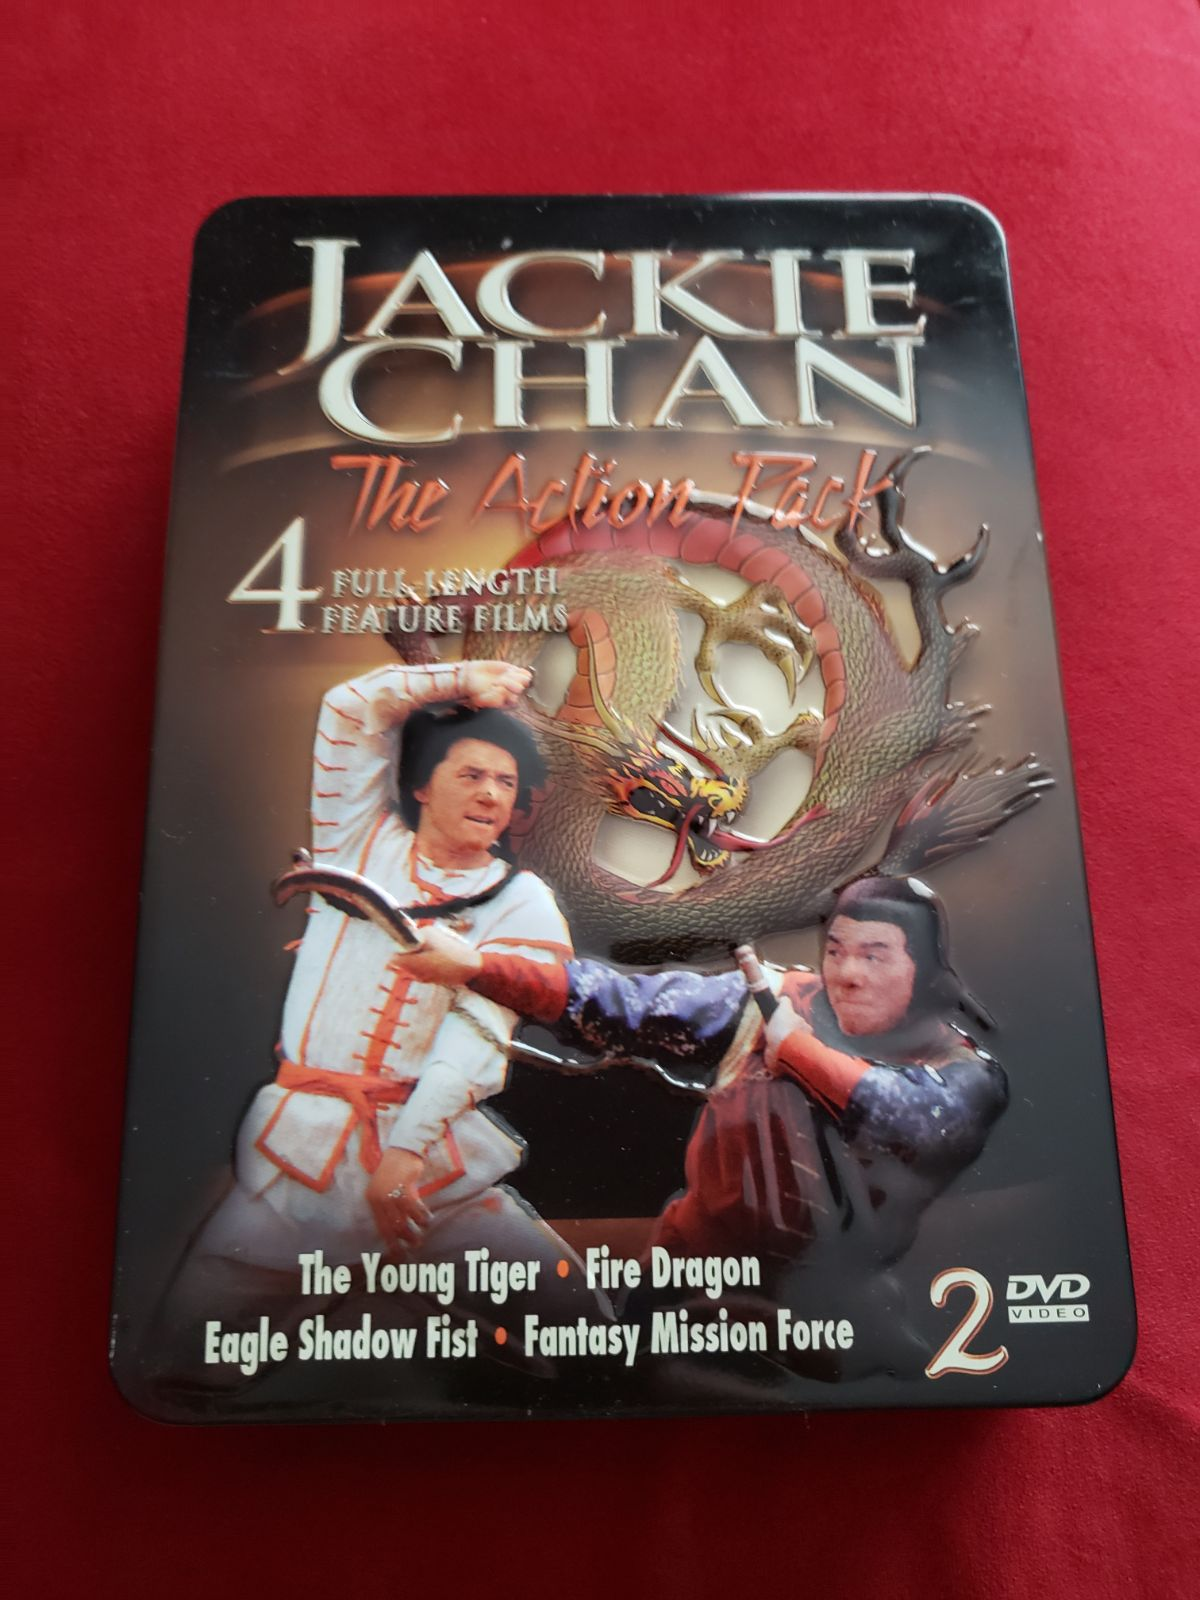 Jackie Chan: The Action Pack 4 movies